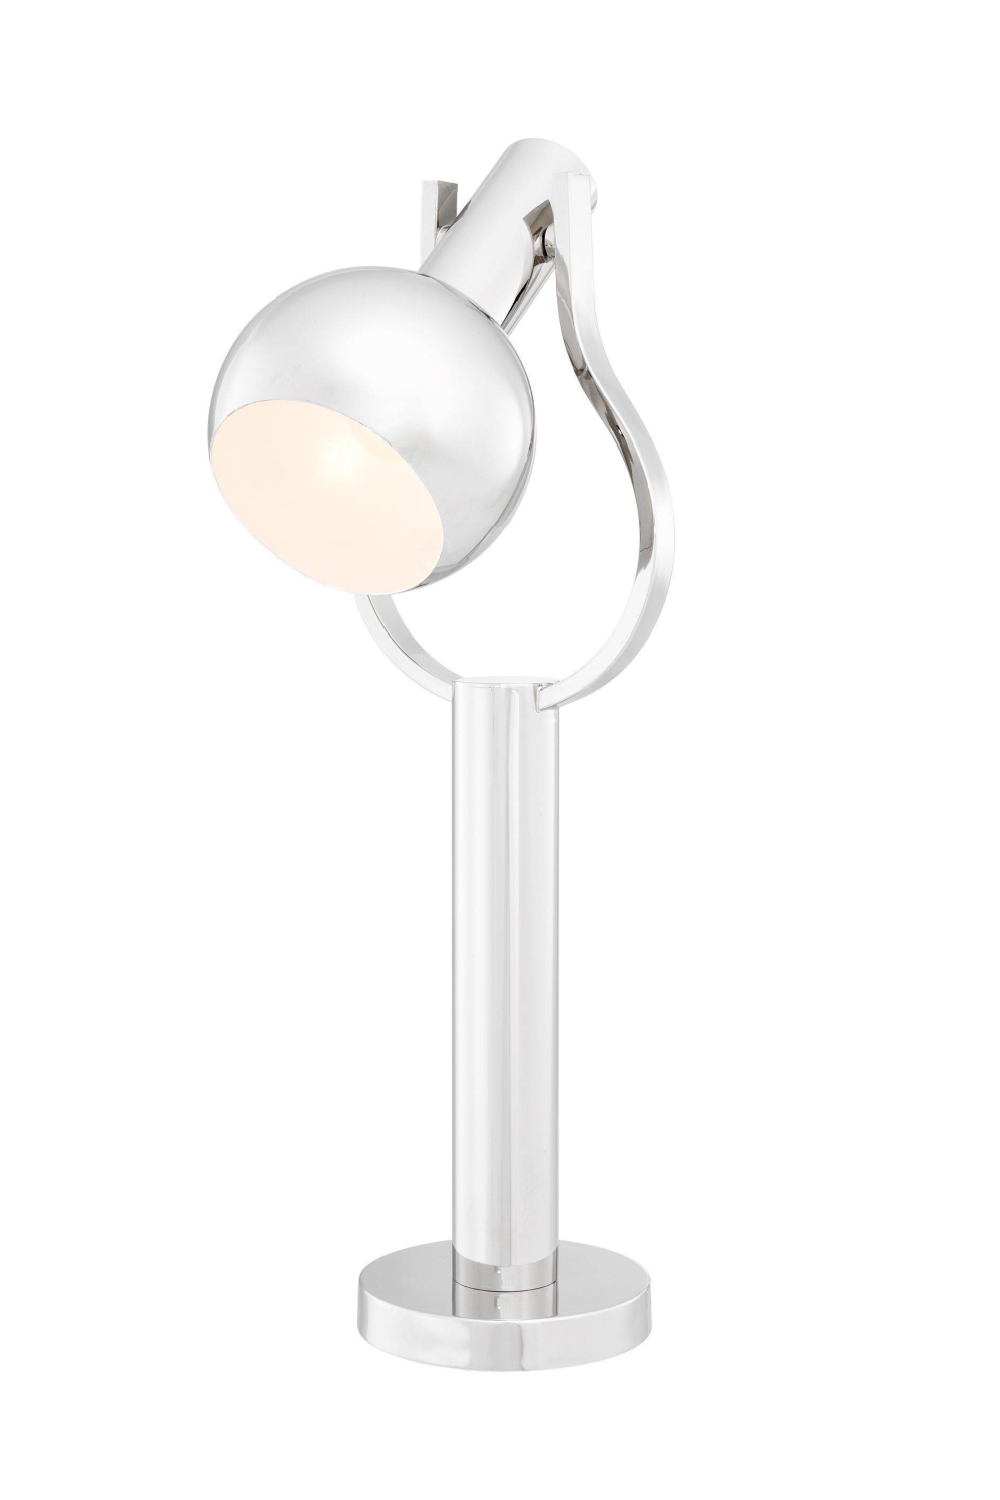 Silver Spotlight Table Lamp | Eichholtz Jaques | OROA Luxury Lighting